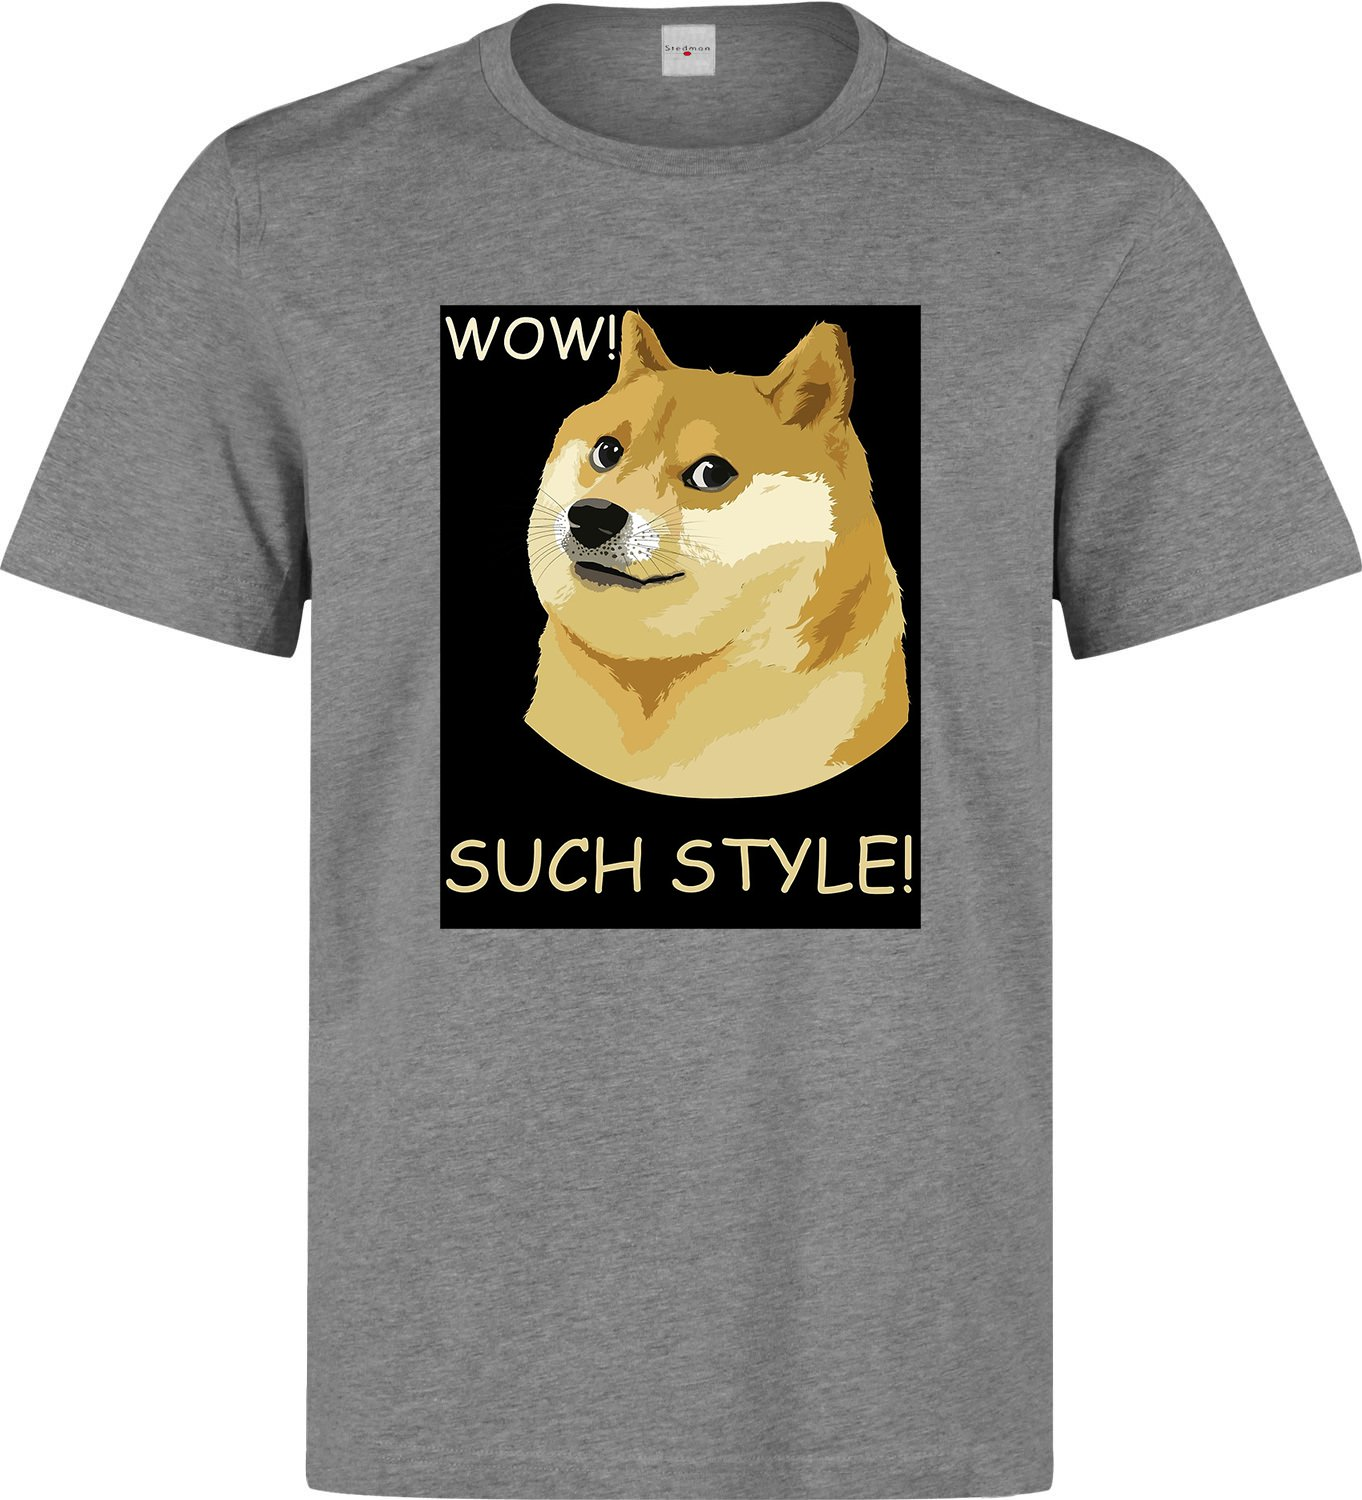 Doge meme funny men printed cotton gray t-shirt size XL